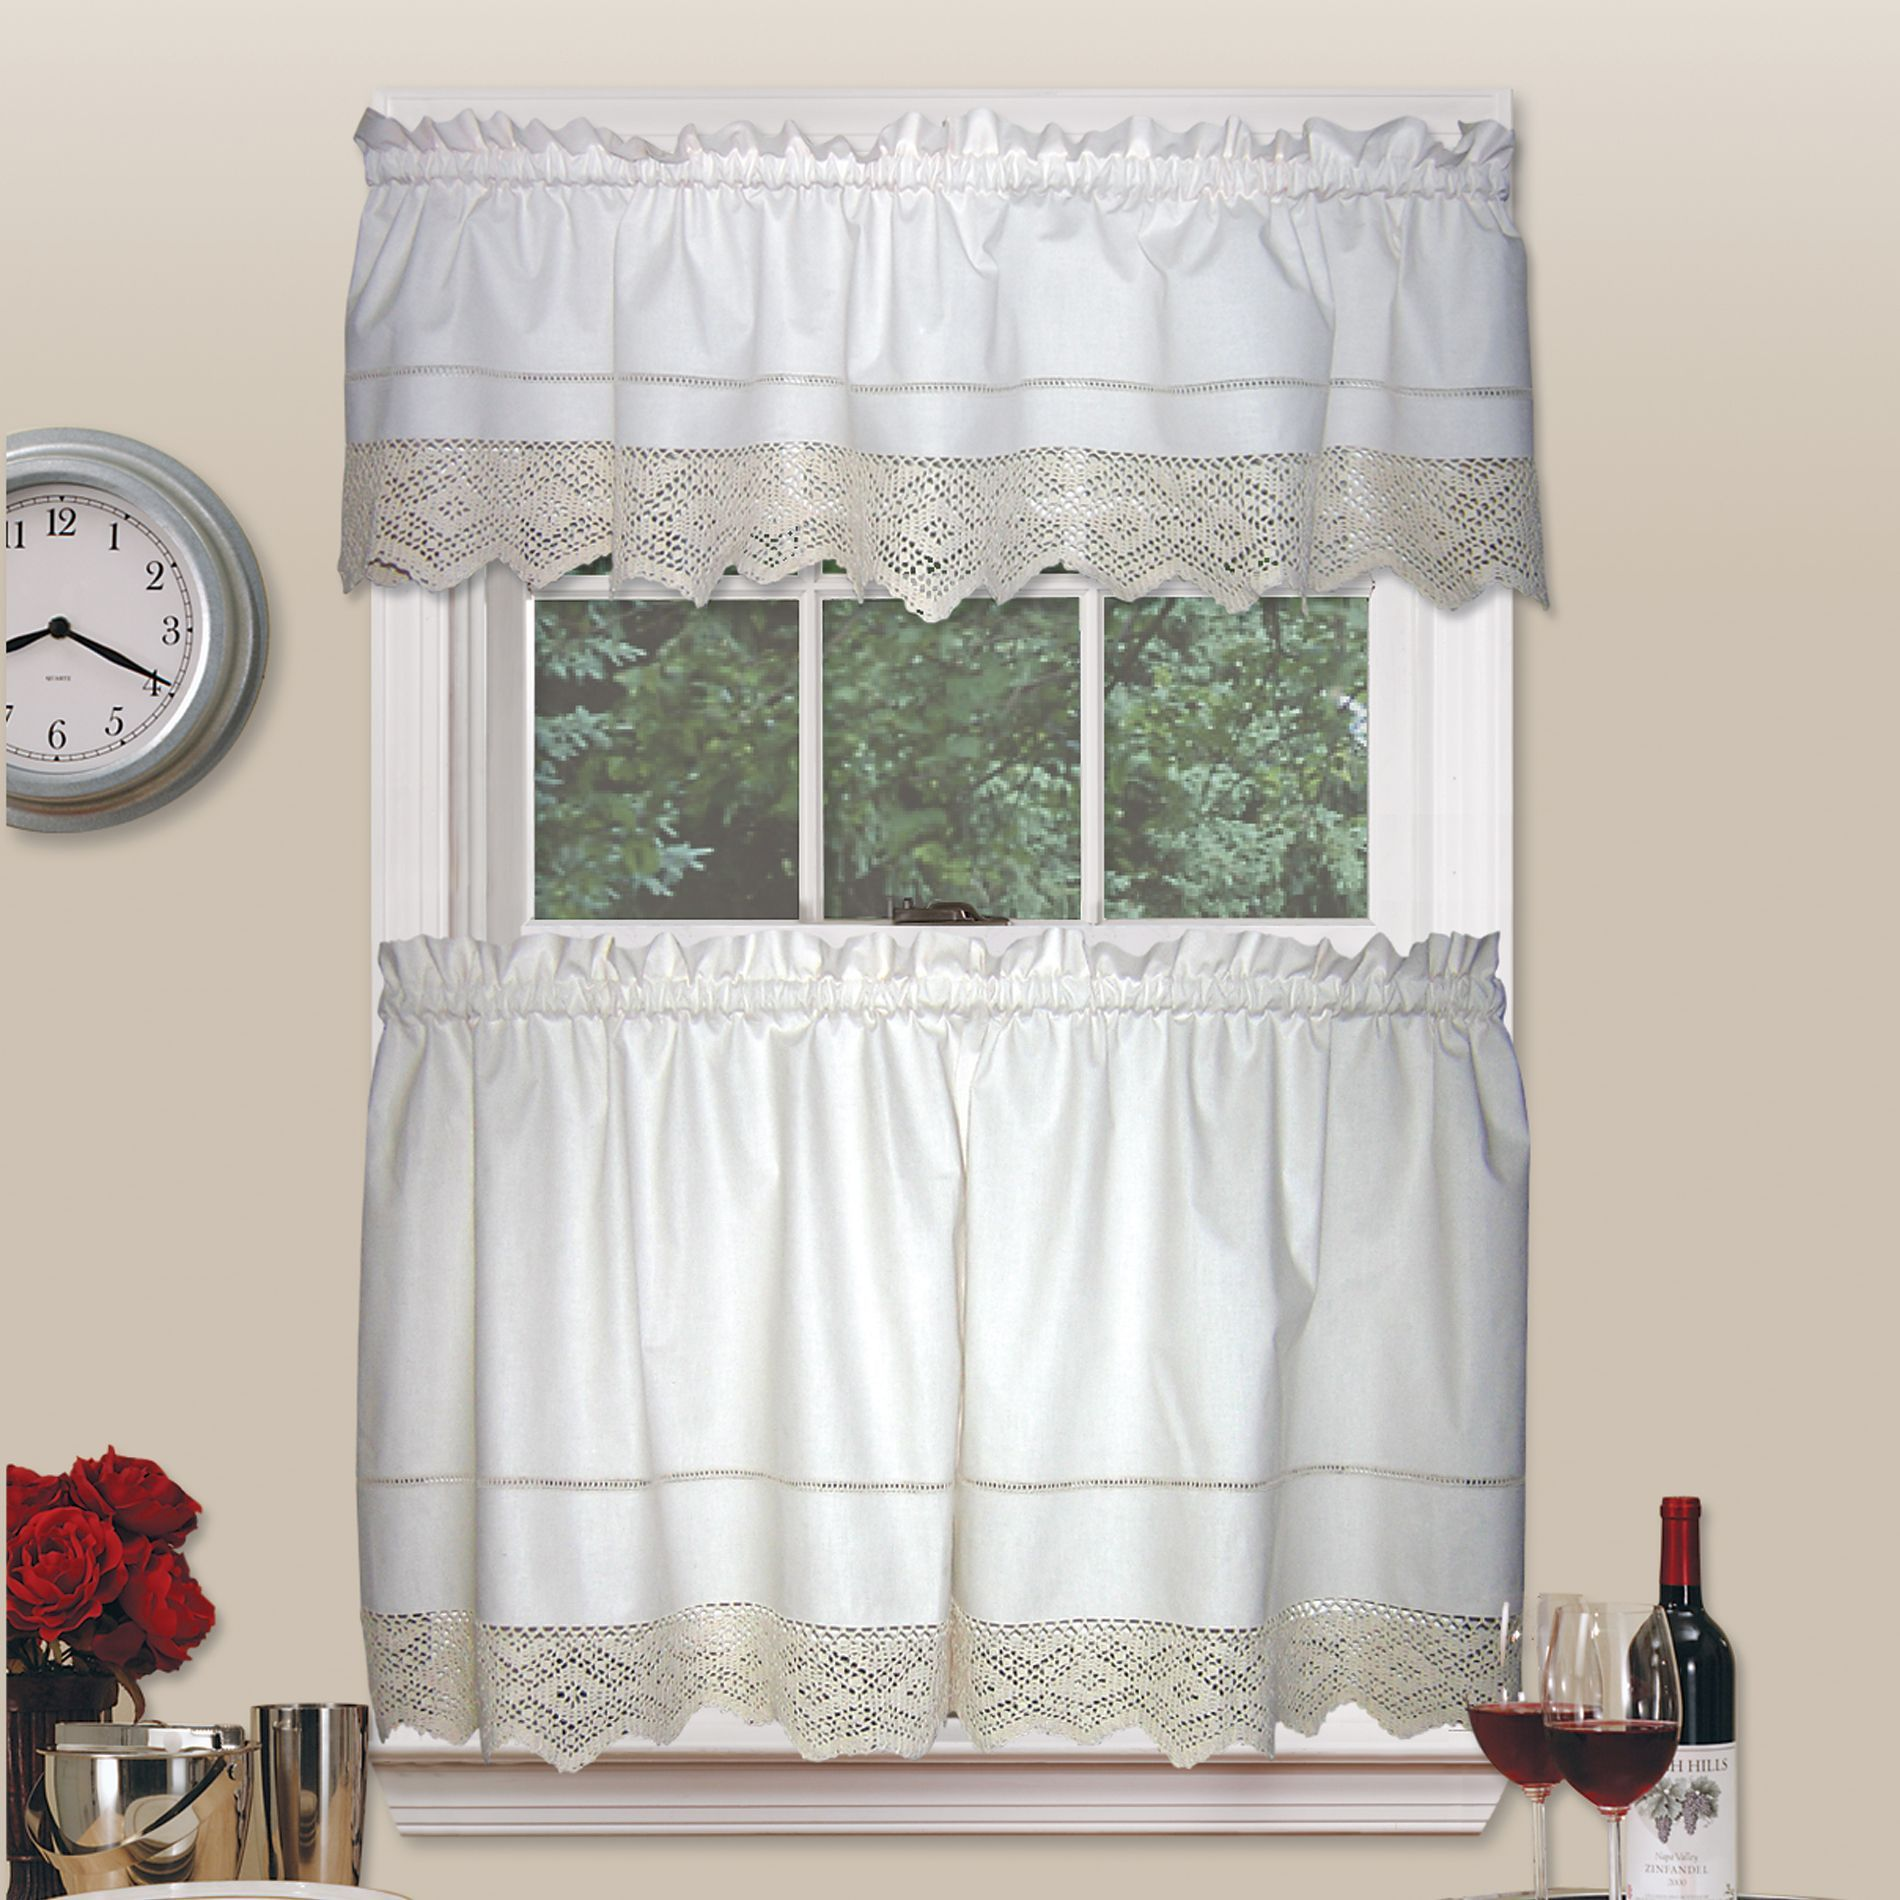 tier kitchen window buffalo moose homes log cafe treatments rustic shop curtain woodland everything curtains check